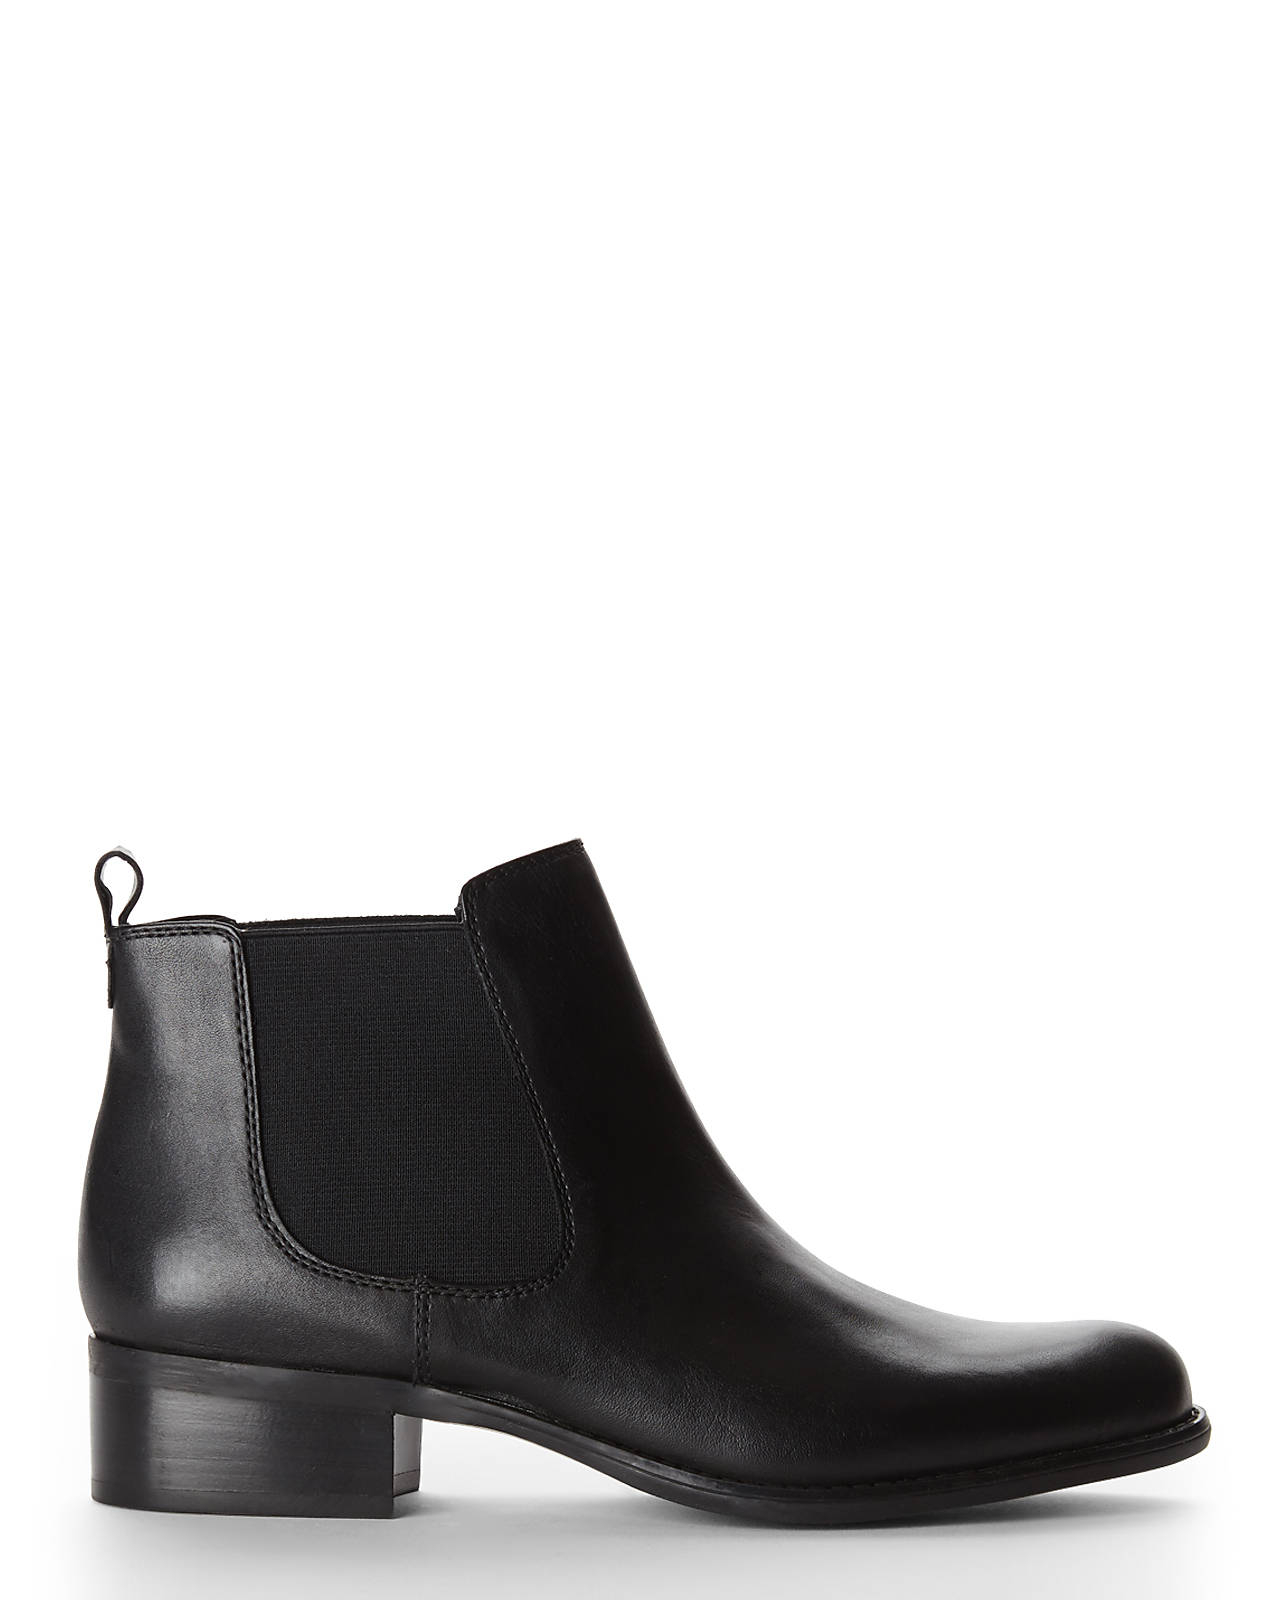 Lyst Franco Sarto Black Cambridge Chelsea Boots In Black